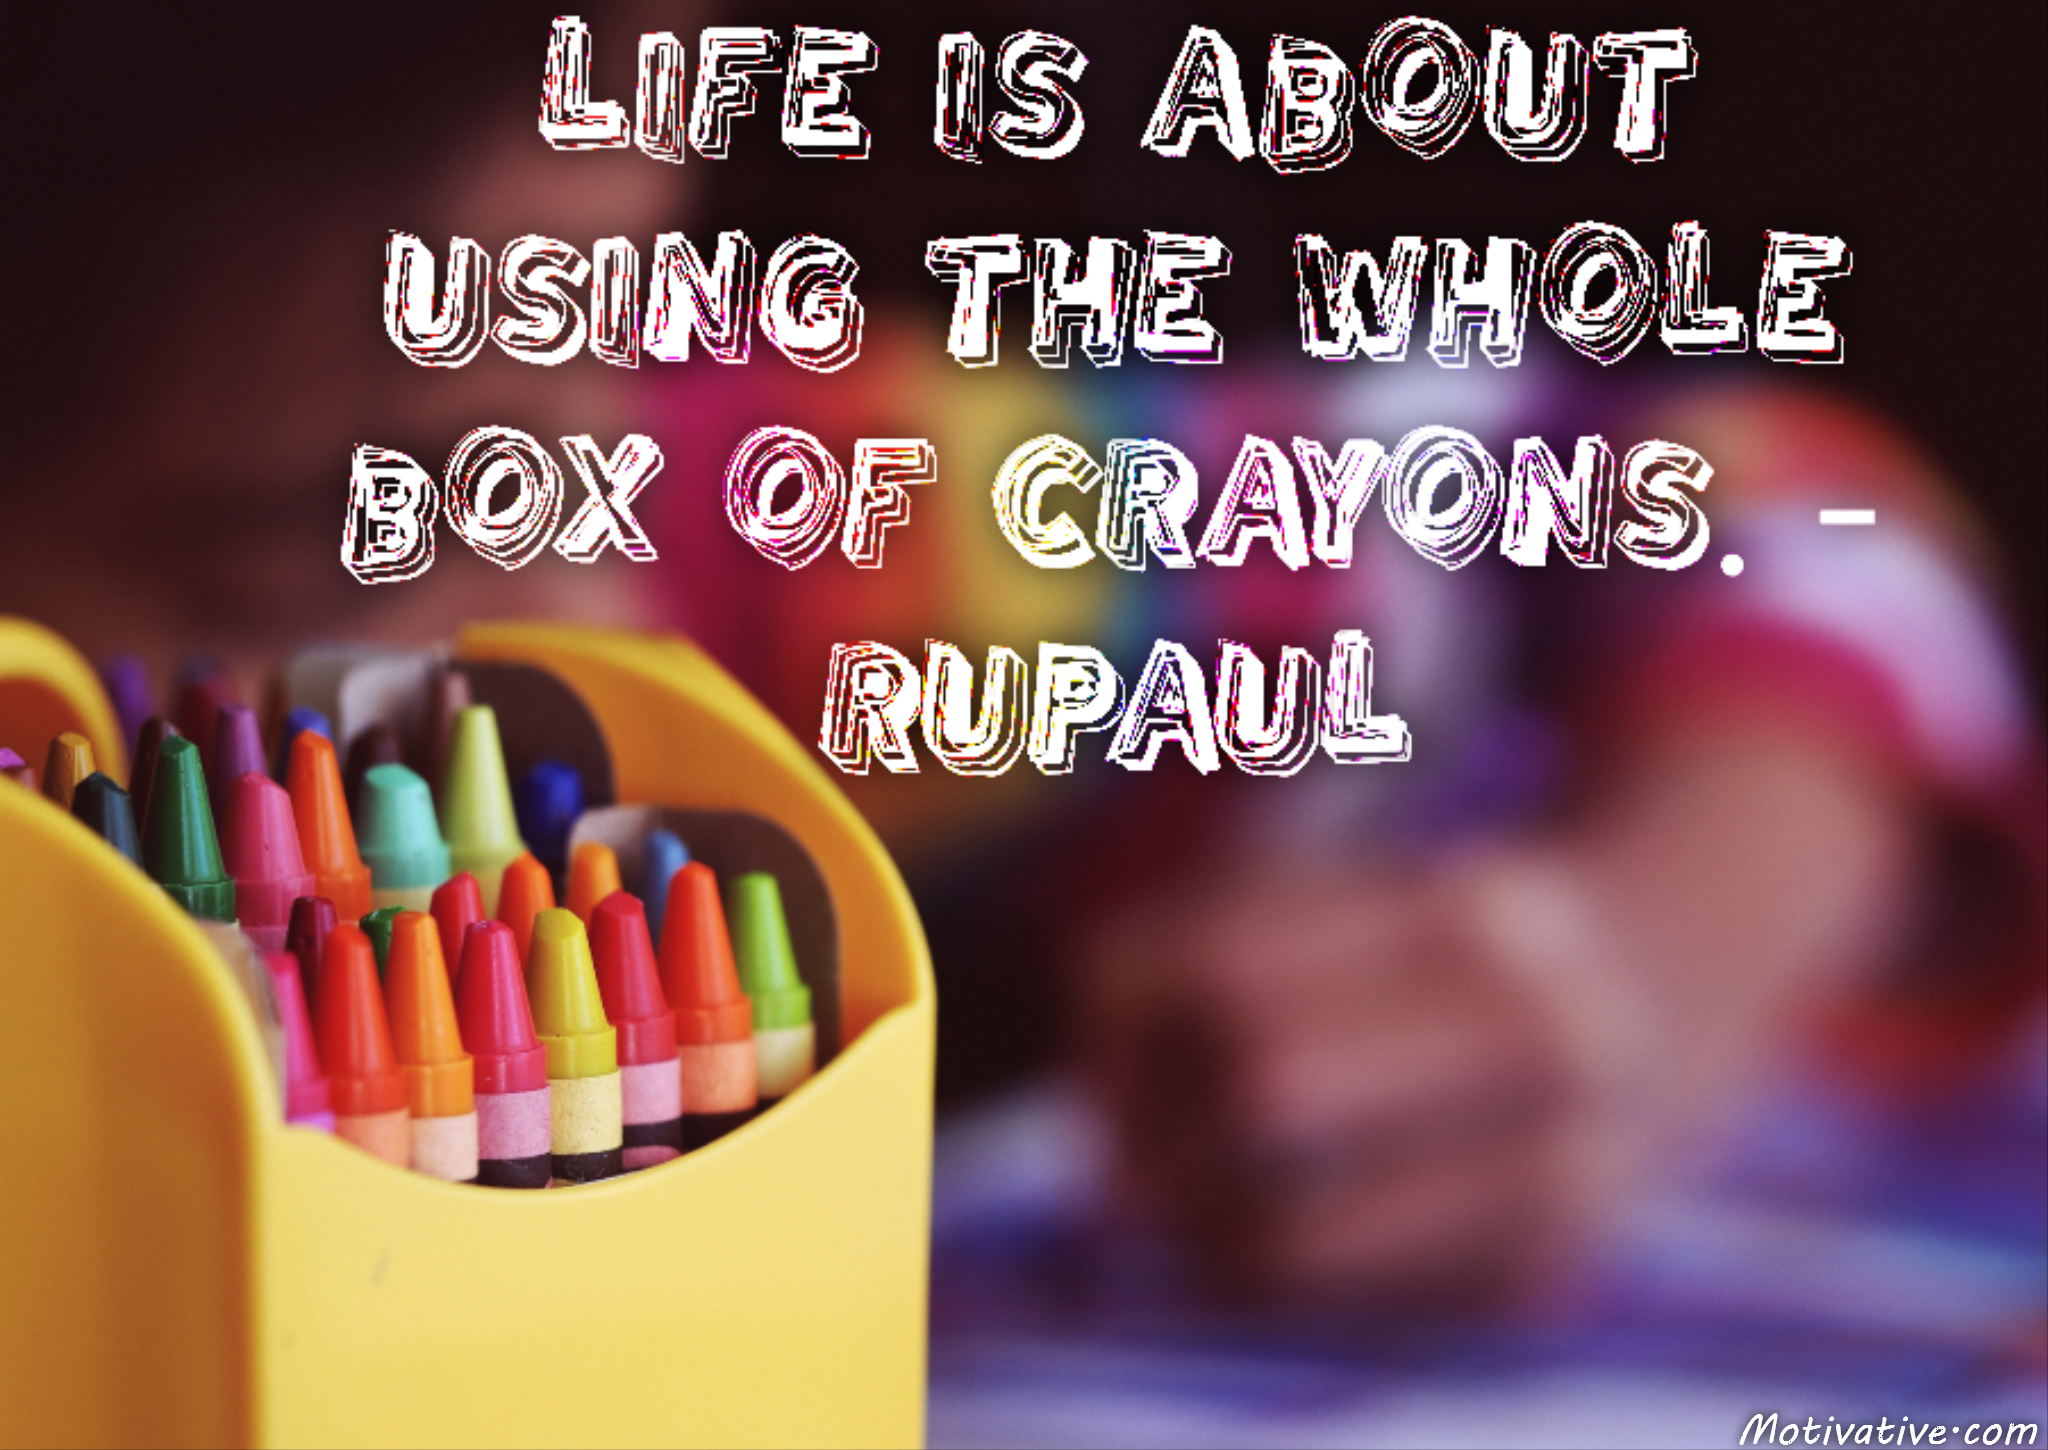 Life is about using the whole box of crayons. – RuPaul